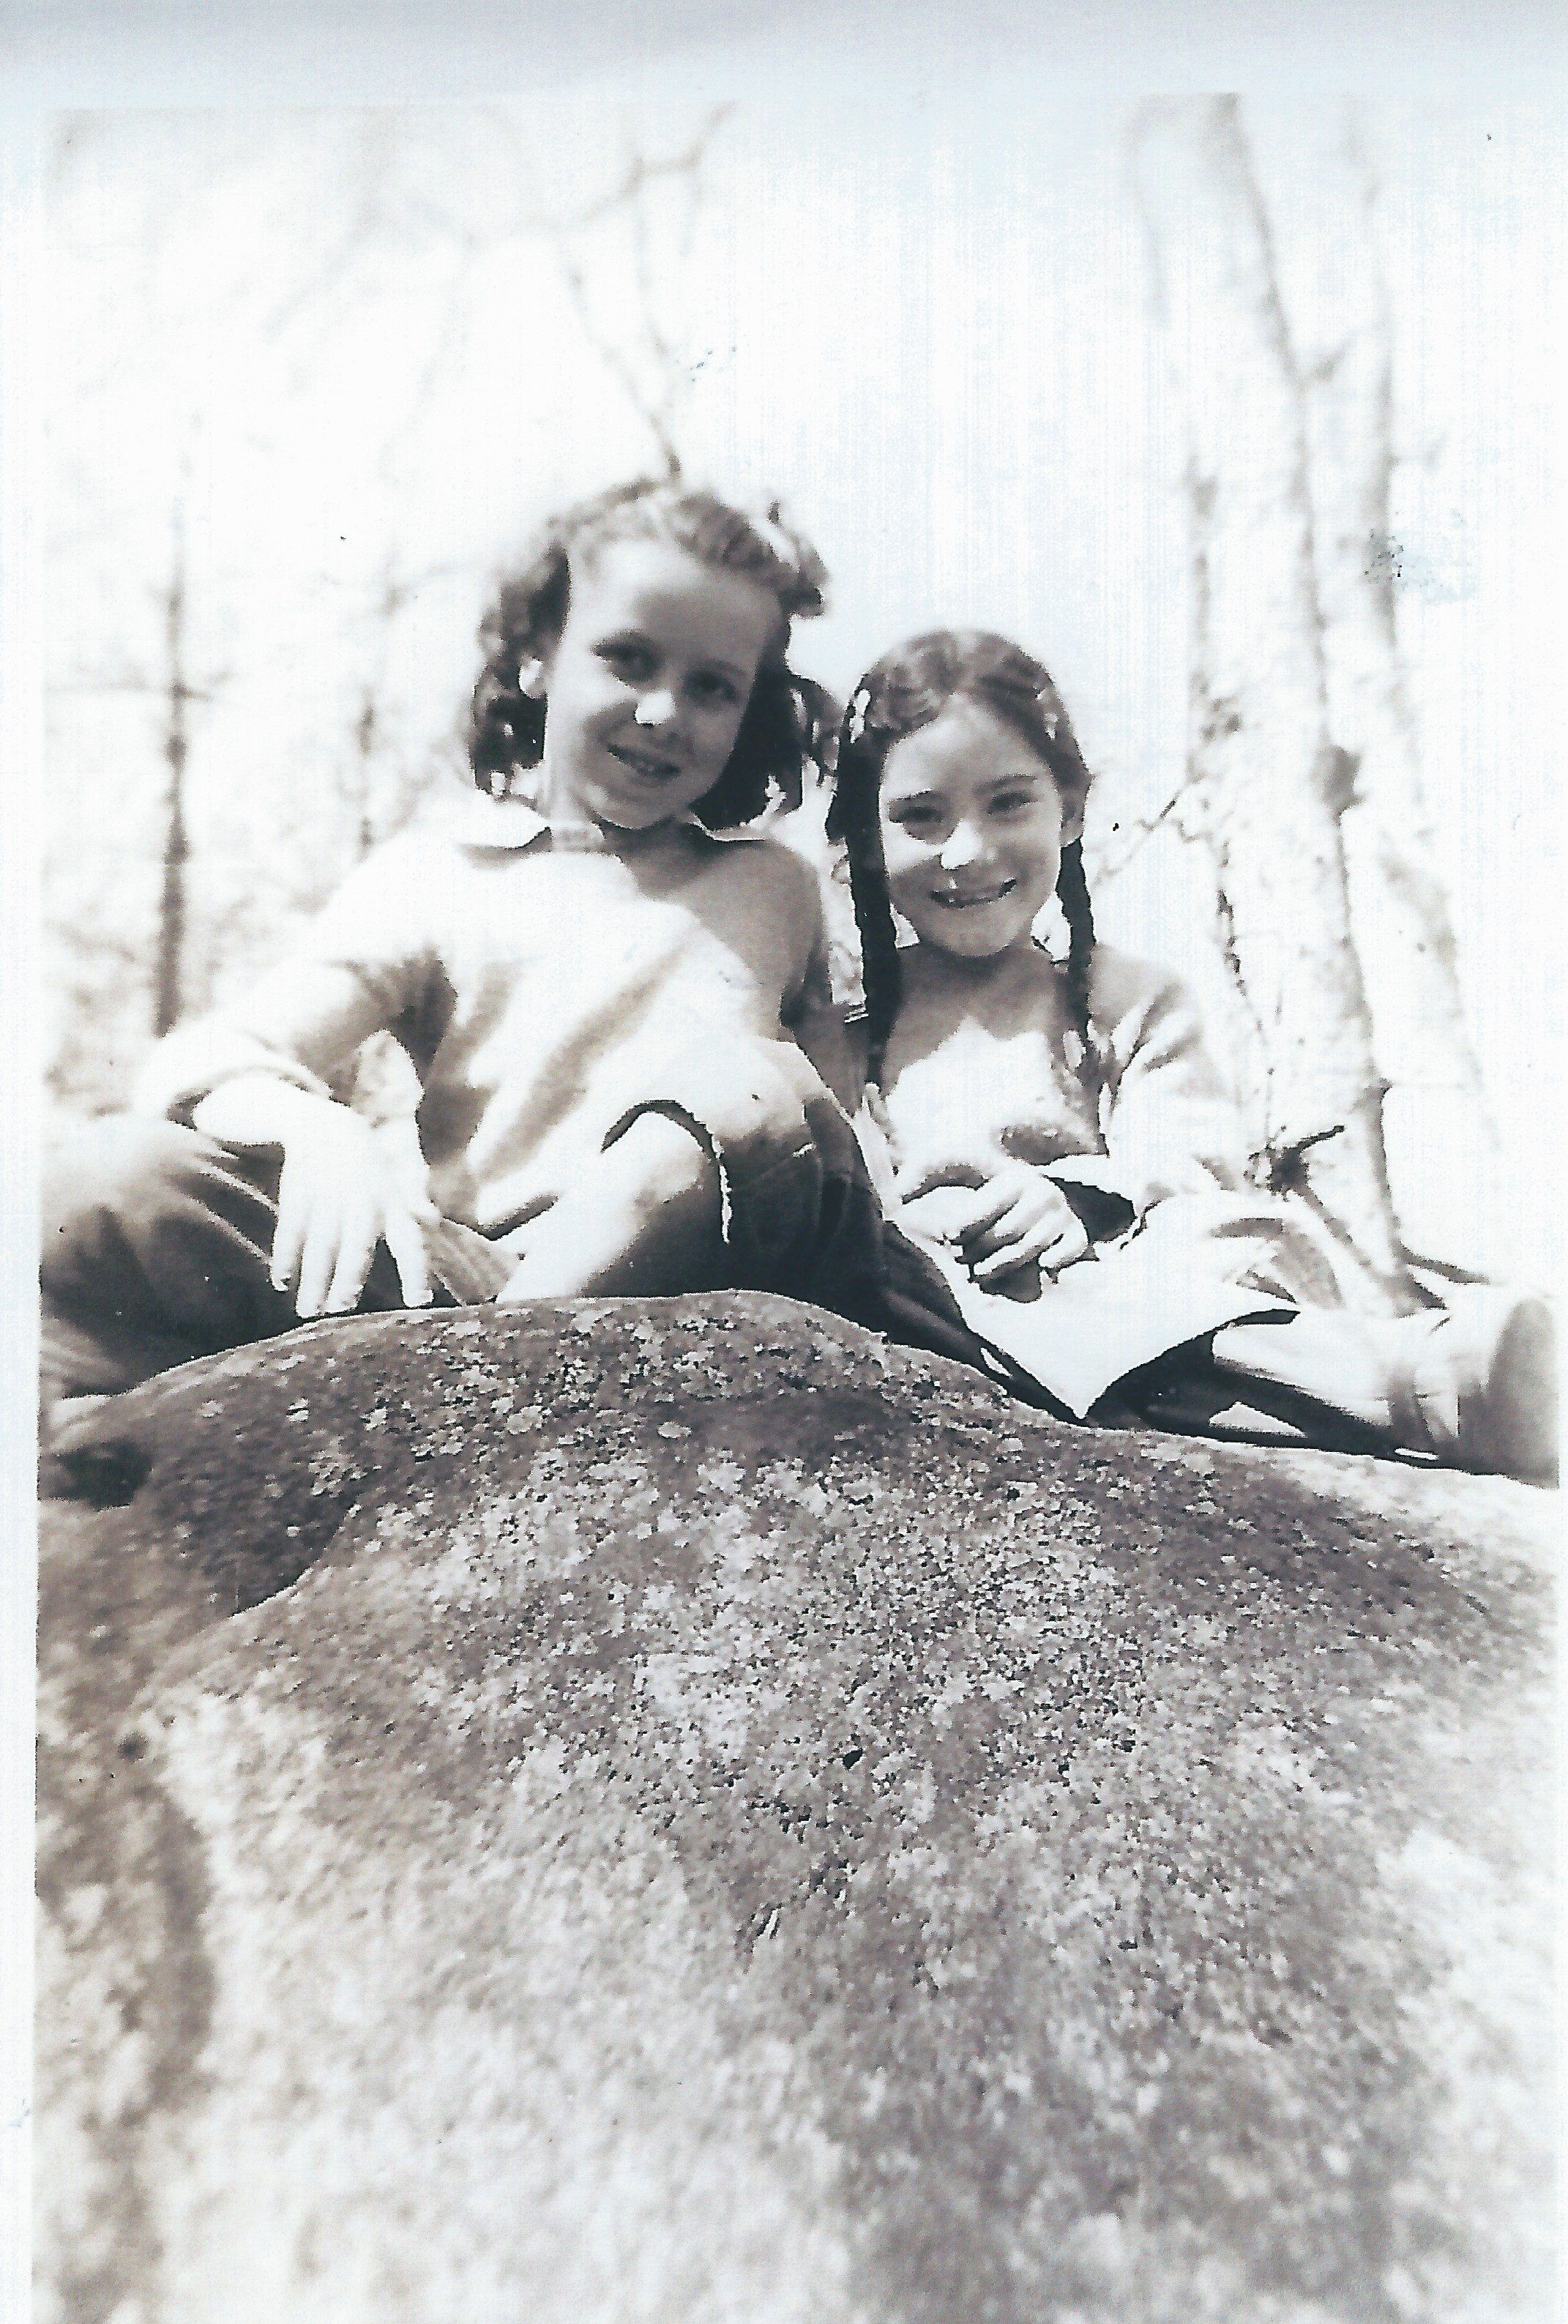 jane rausch delcoma and nancy hobart '48